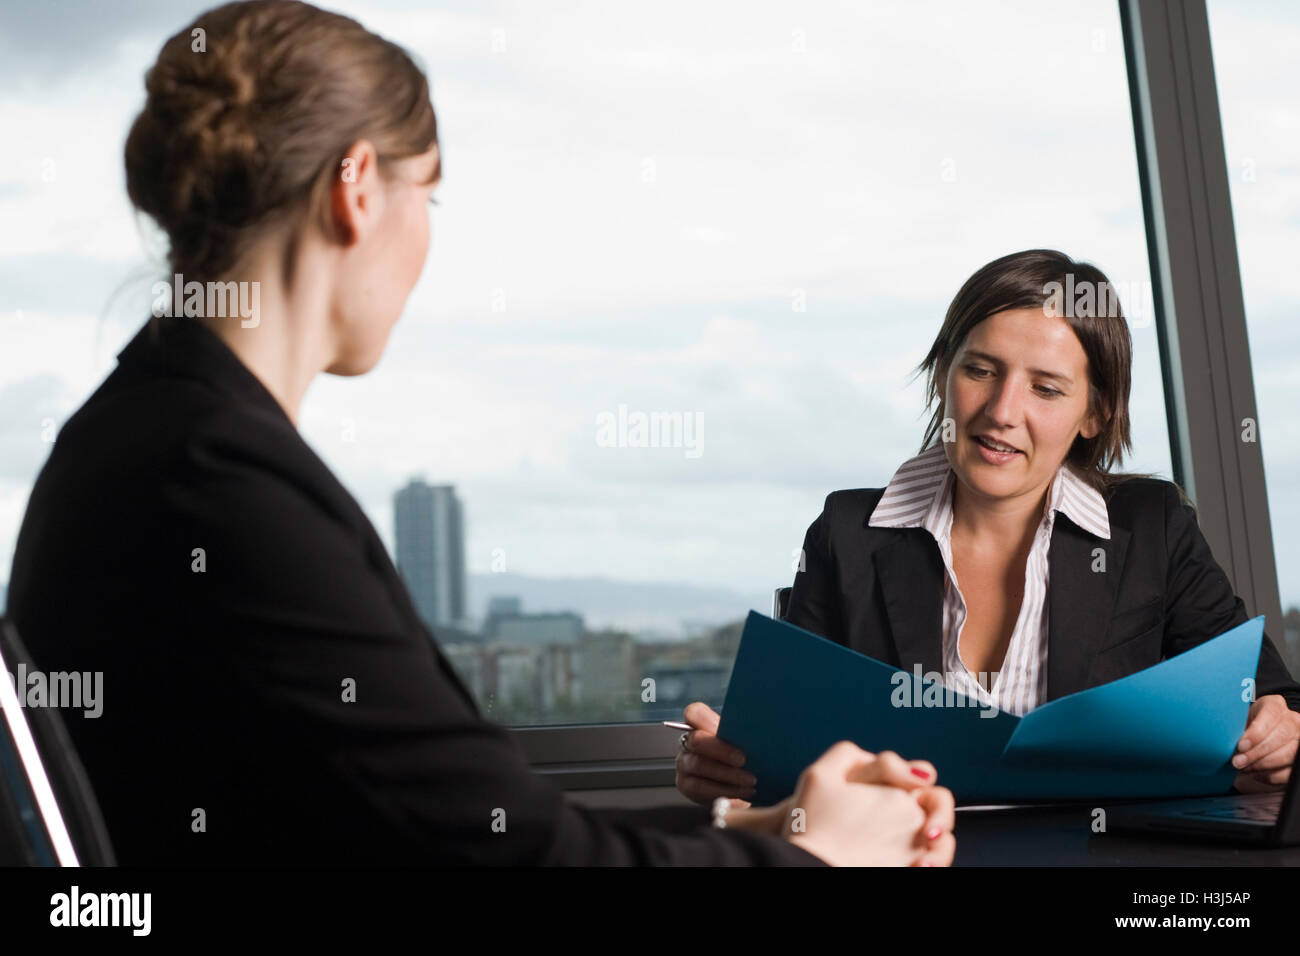 Business interview - Stock Image